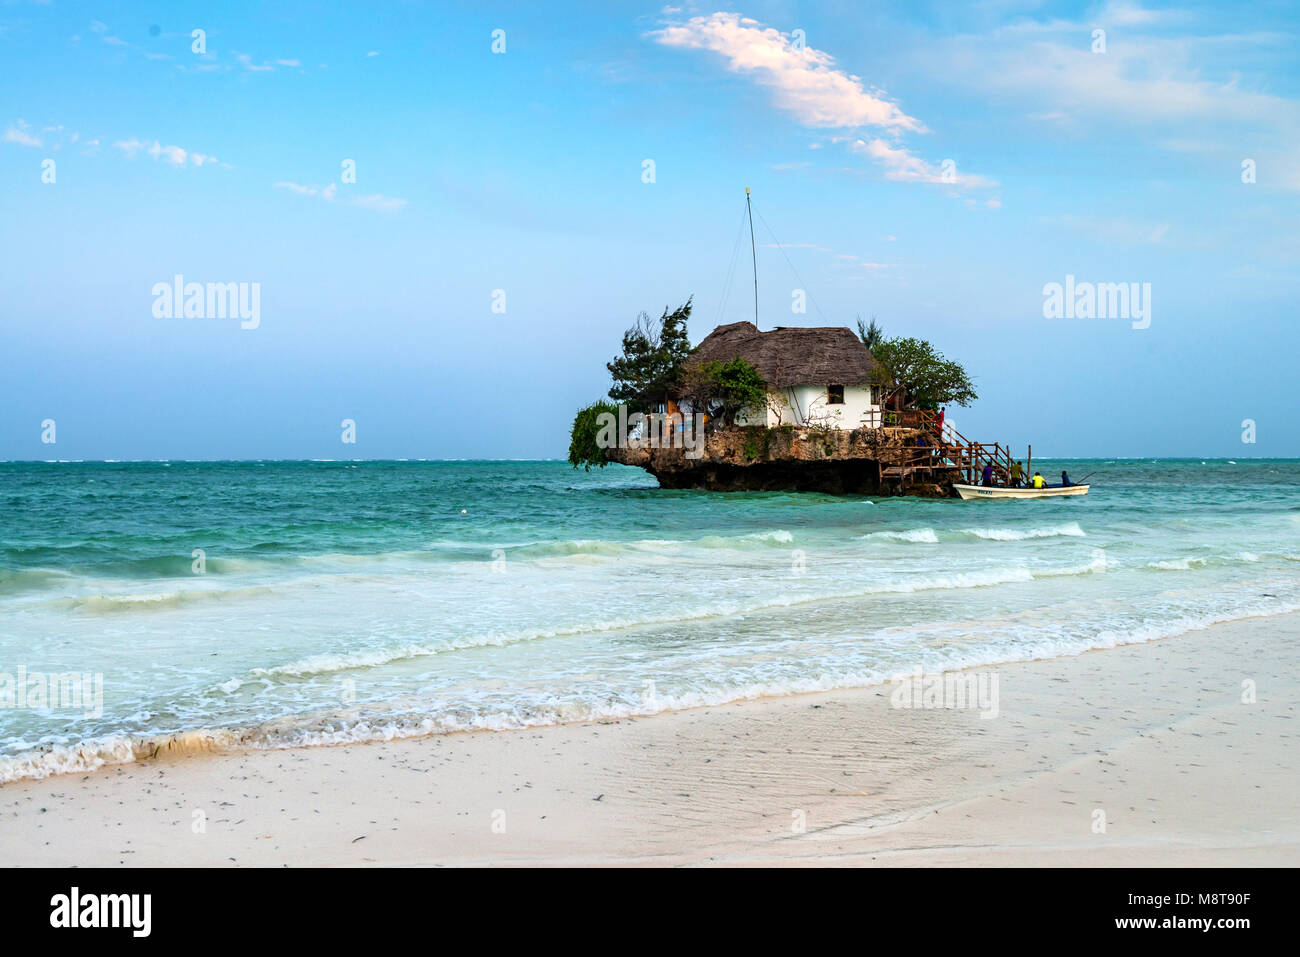 ZANZIBAR ISLAND, TANZANIA - CIRCA JANUARY 2015: Rock restaurant in water - Stock Image